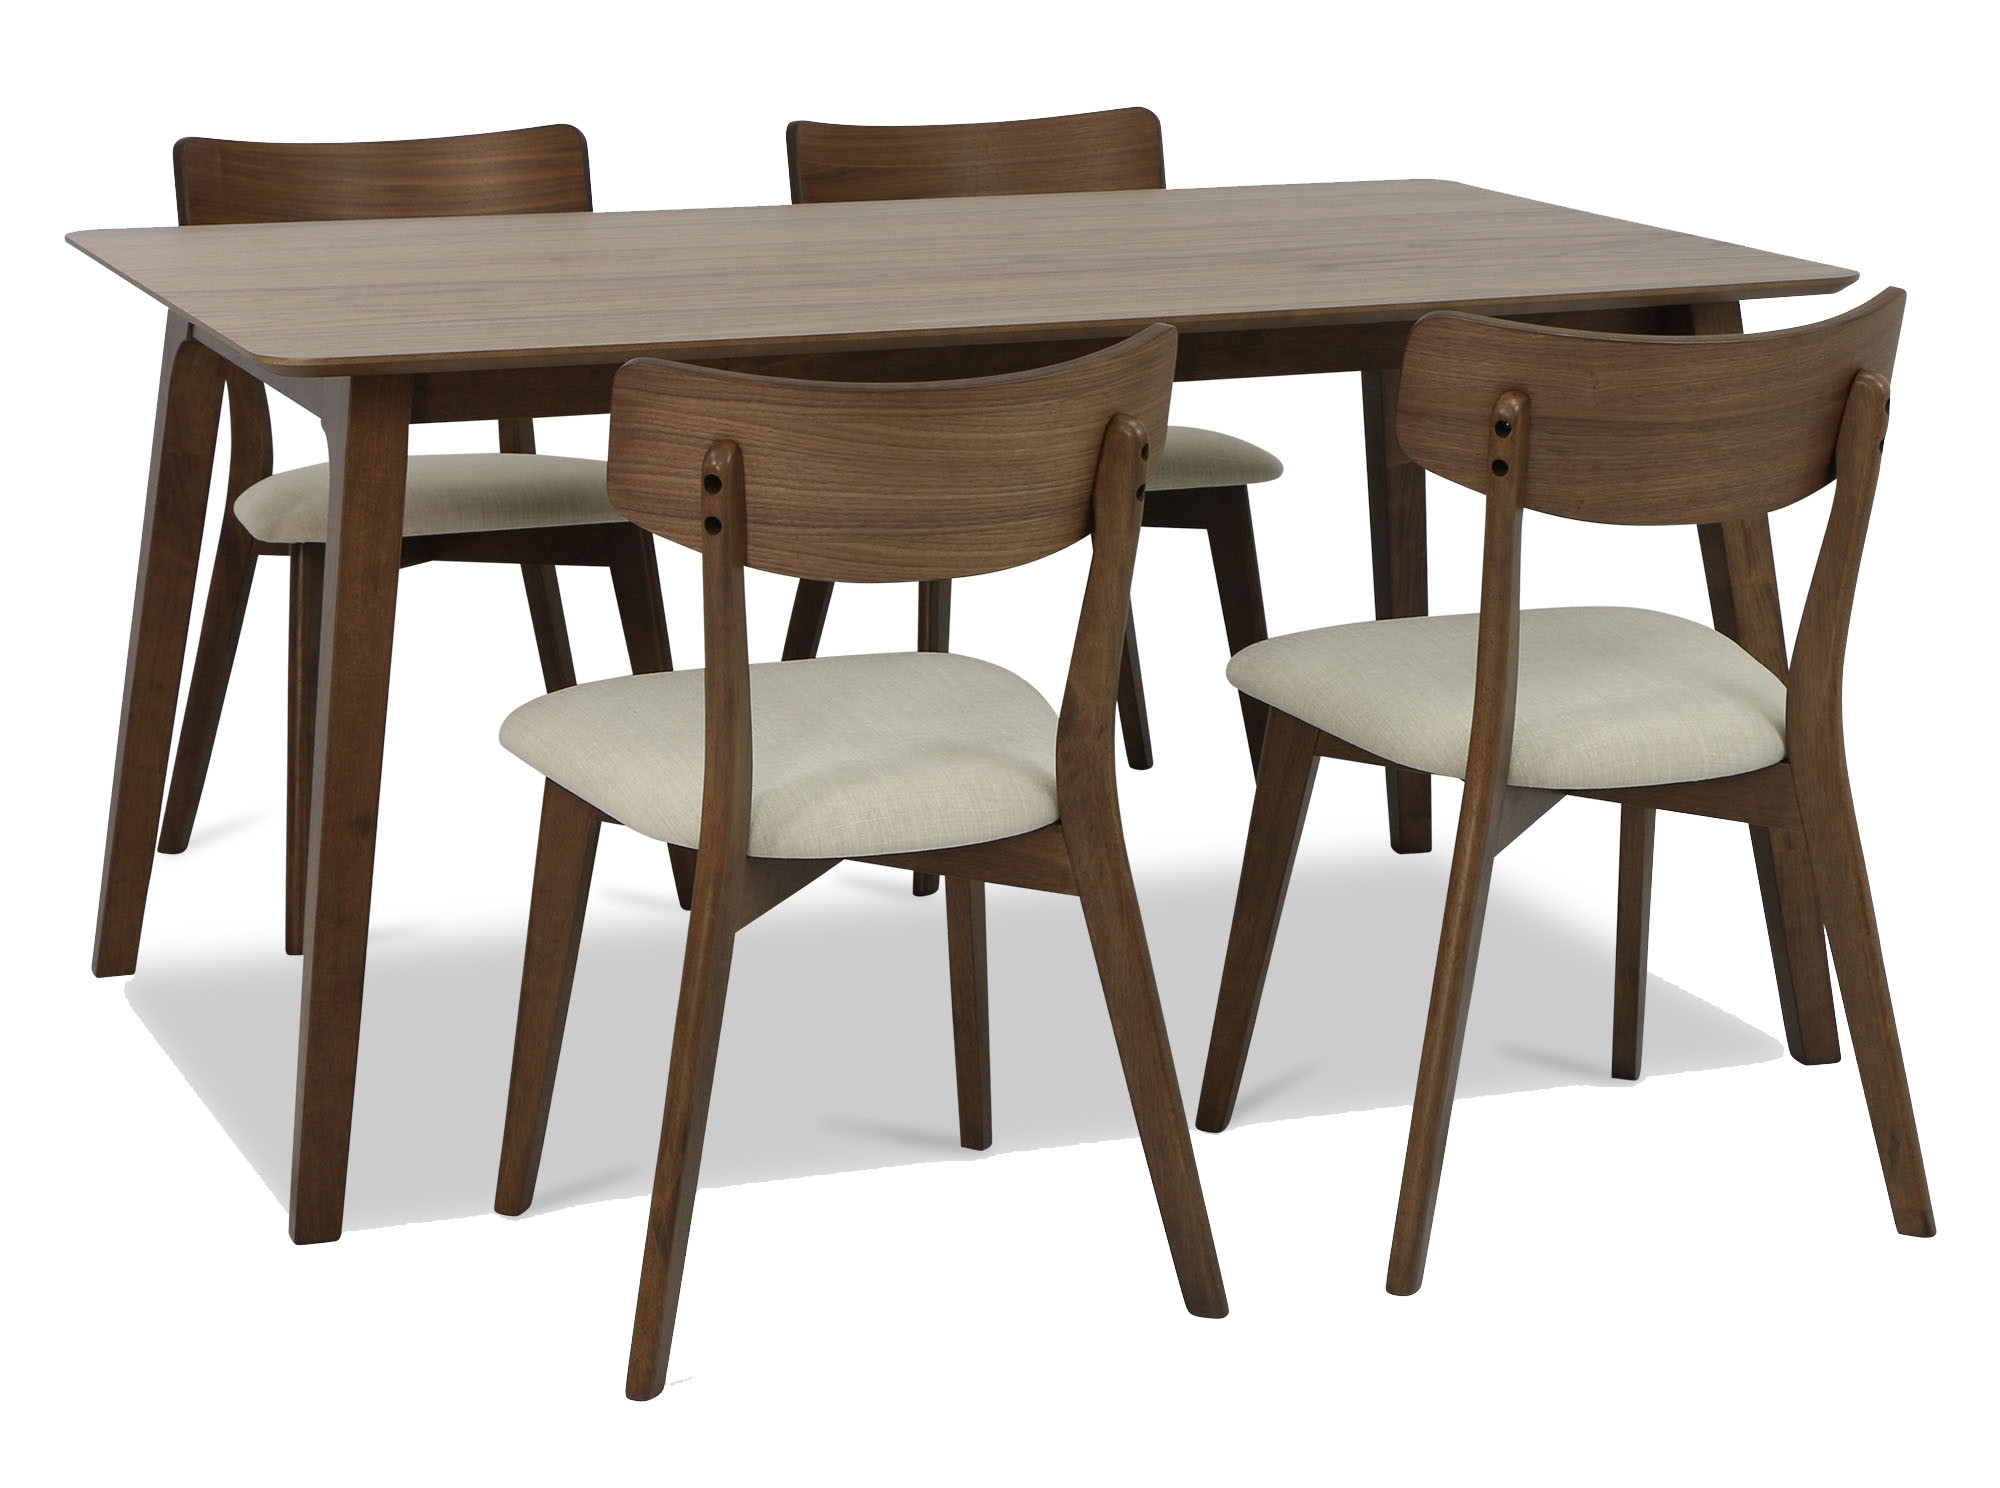 Fortytwo For Dining Table Sets With 6 Chairs (View 15 of 25)